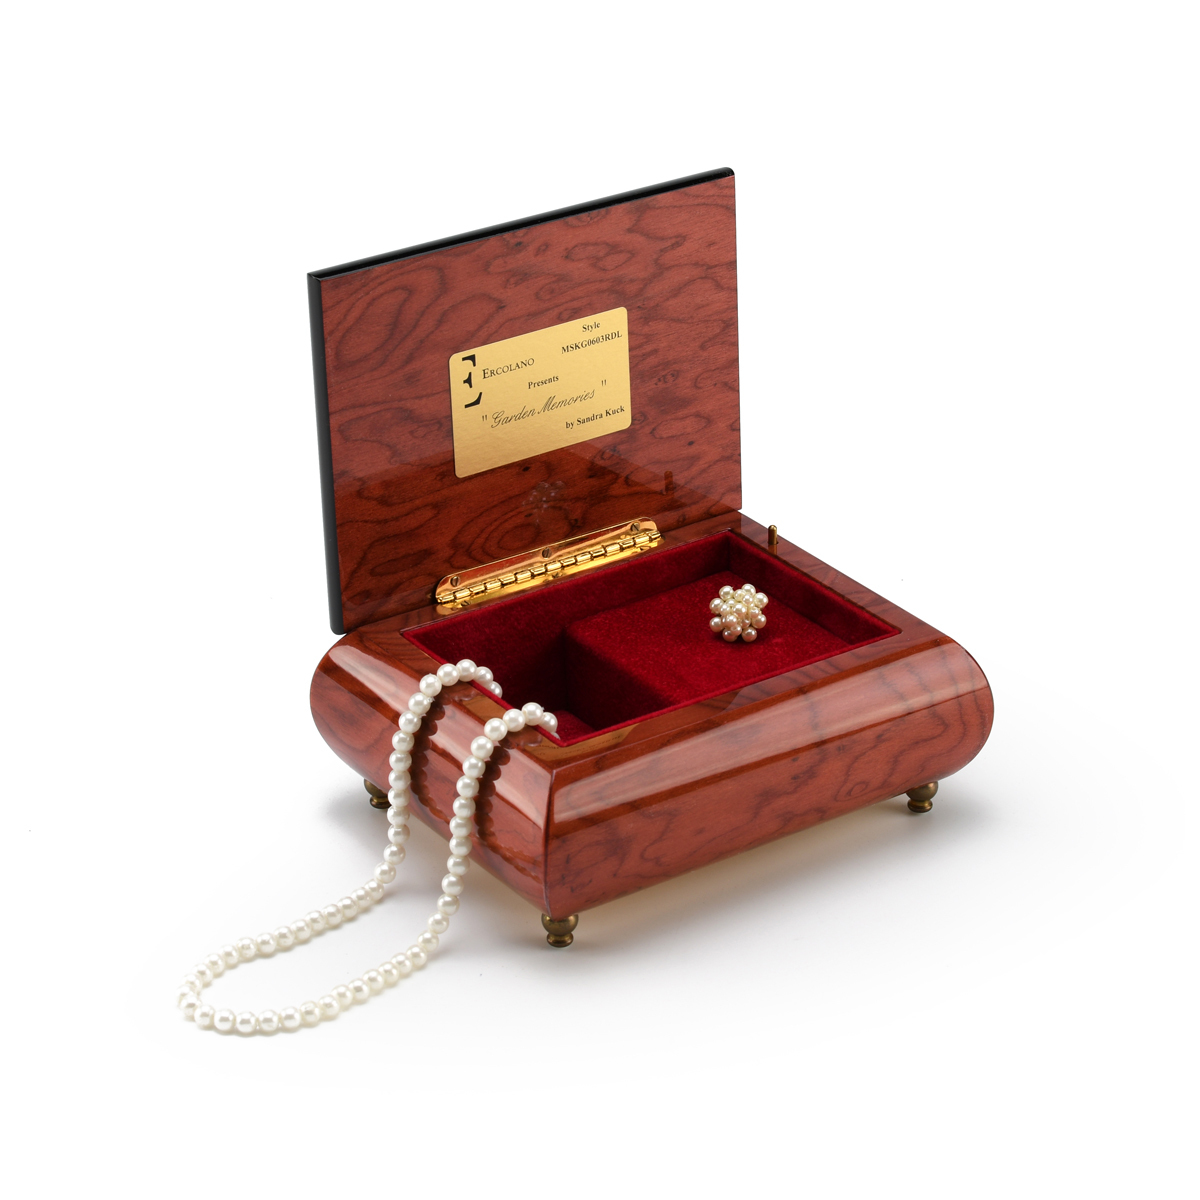 Radiant Mother Ercolano Music Box - A Time Together by Sandra Kuck